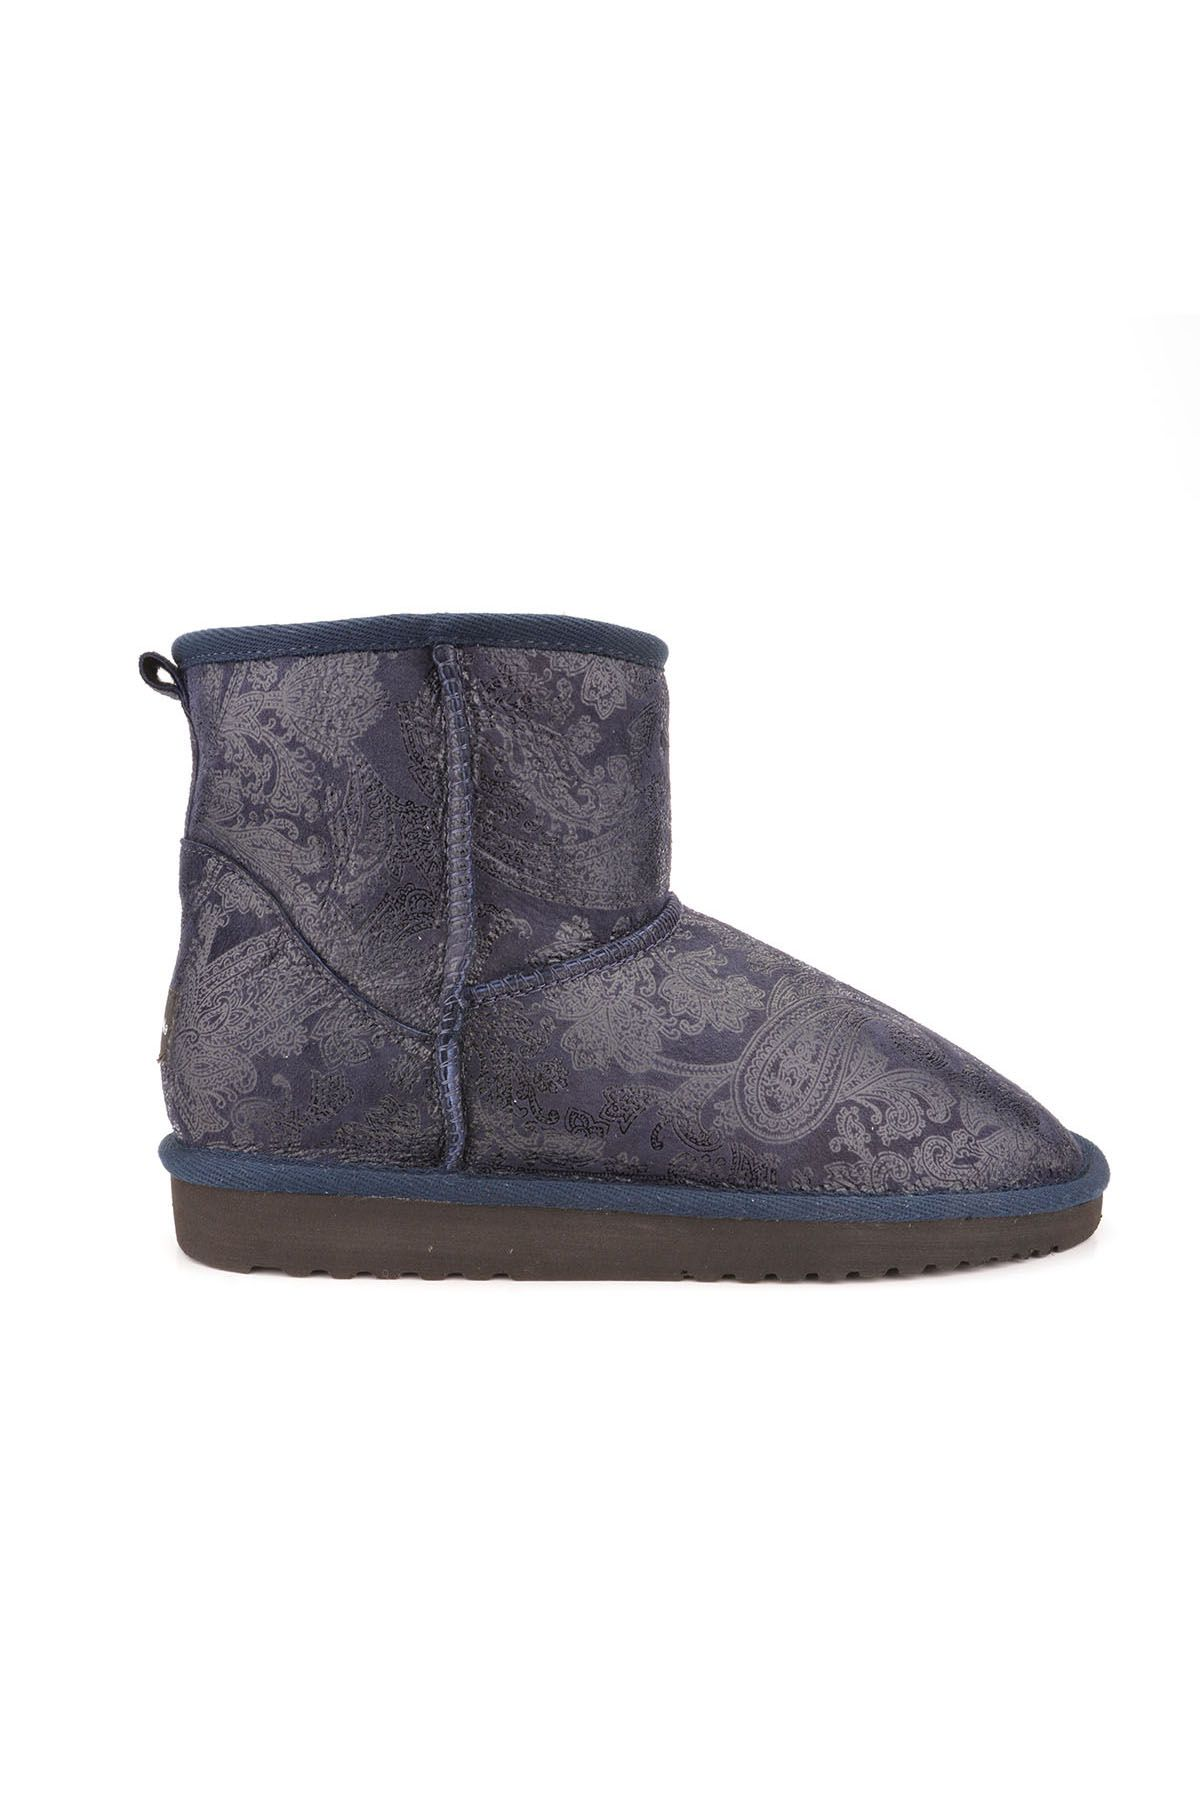 Cool Moon Women Uggs From Genuine Fur With Shawl Pattern Navy blue